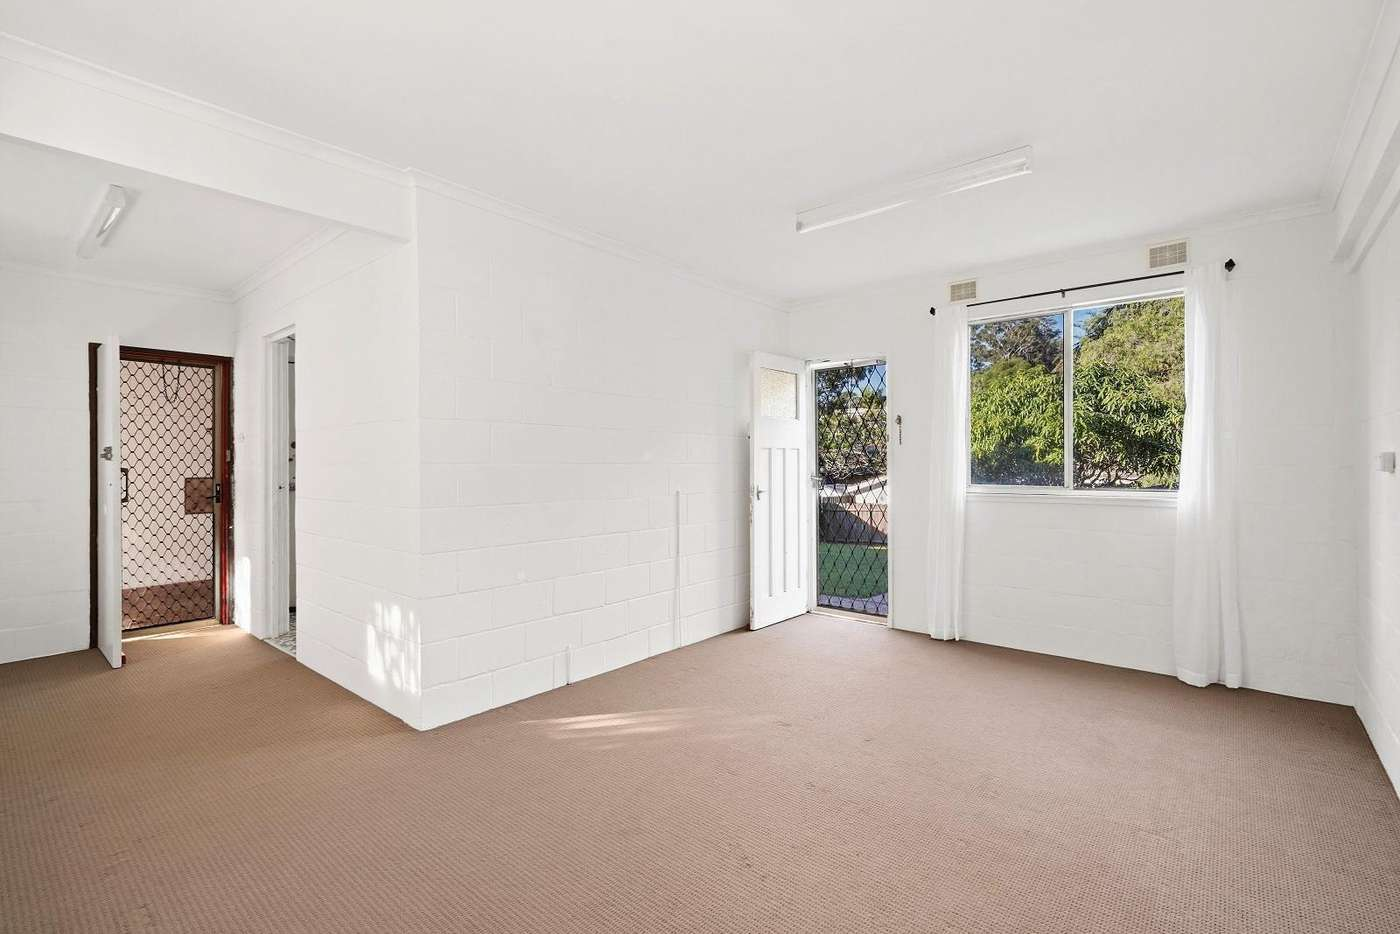 Fifth view of Homely house listing, 32 Anniversary Avenue, Terrigal NSW 2260